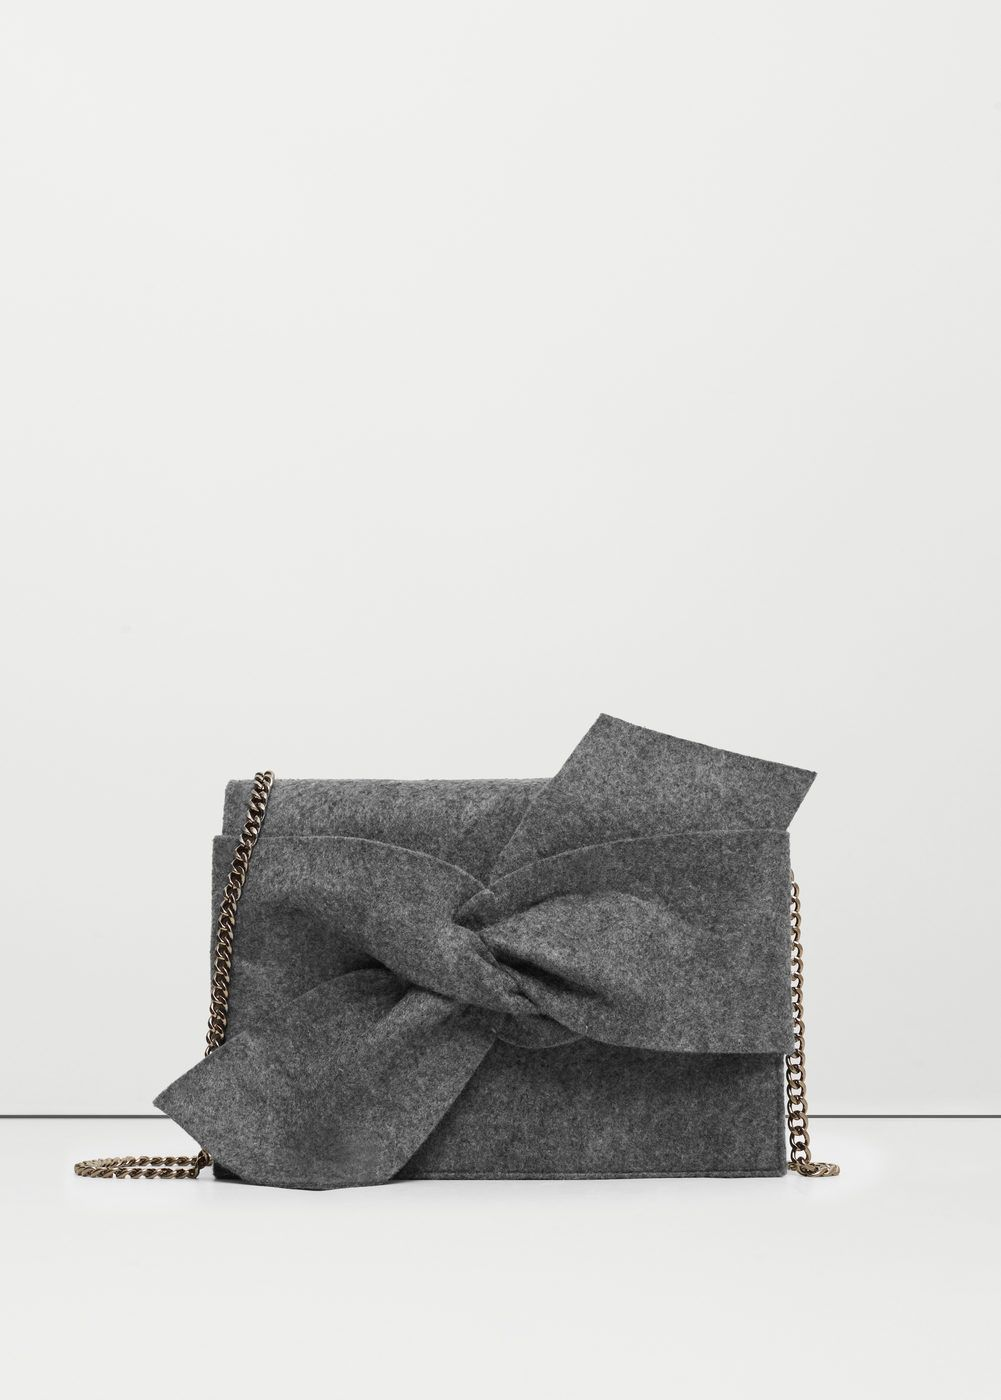 Knot cross-body bag - Bags for Women | MANGO USA